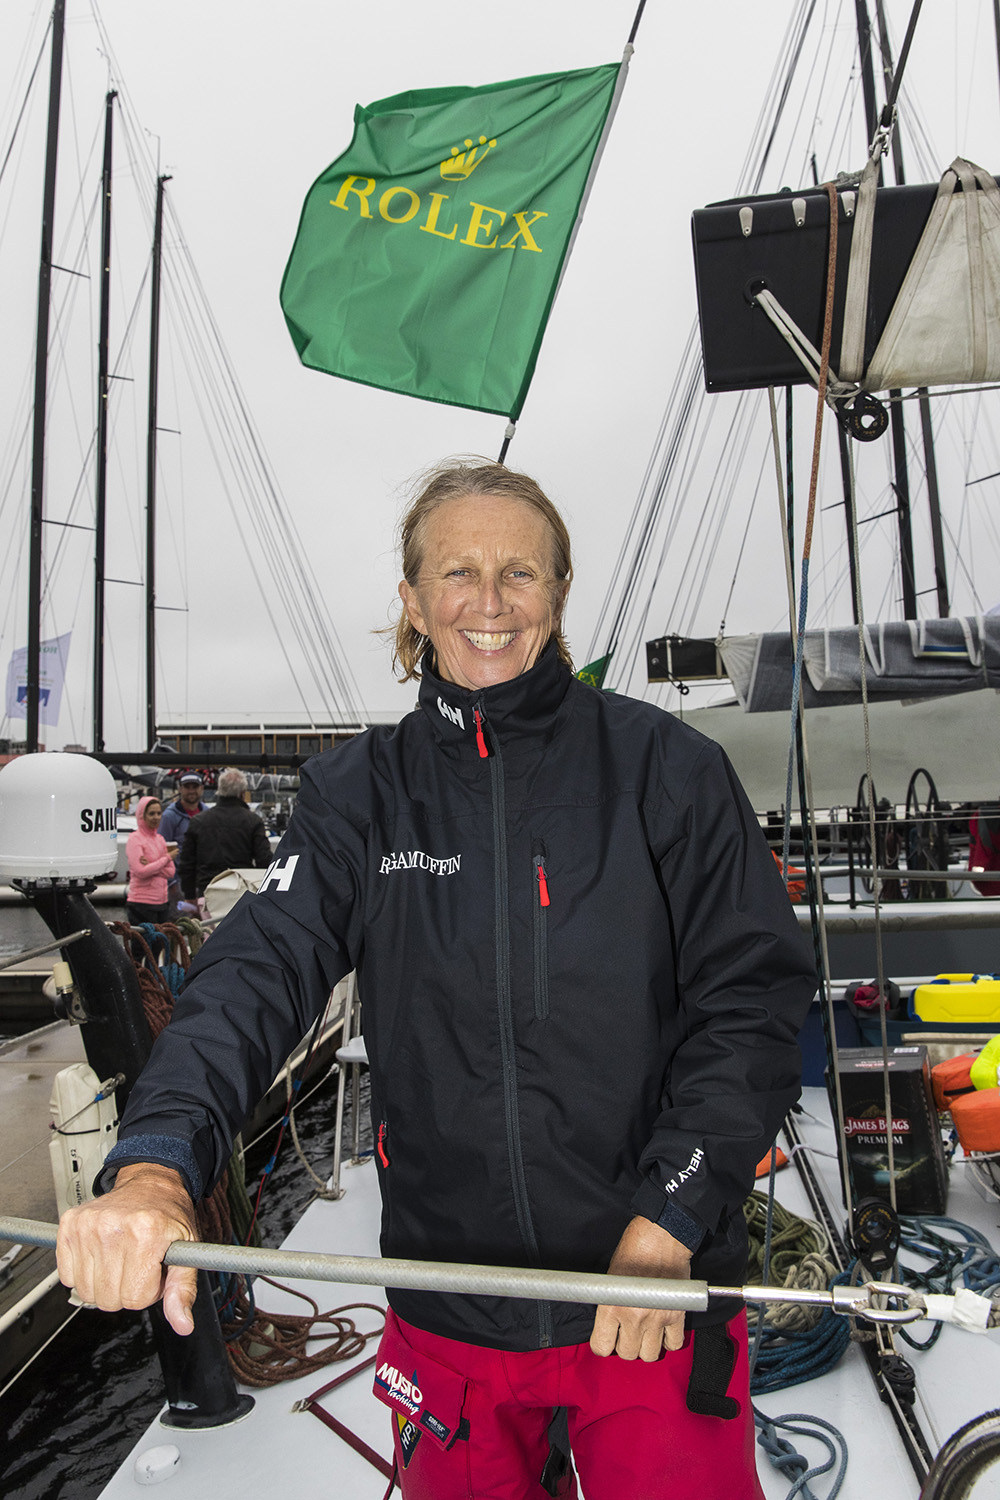 Adrienne Cahalan at the dock after her 25th Sydney Hobart Yacht Race. Photo Andrea Francolini.